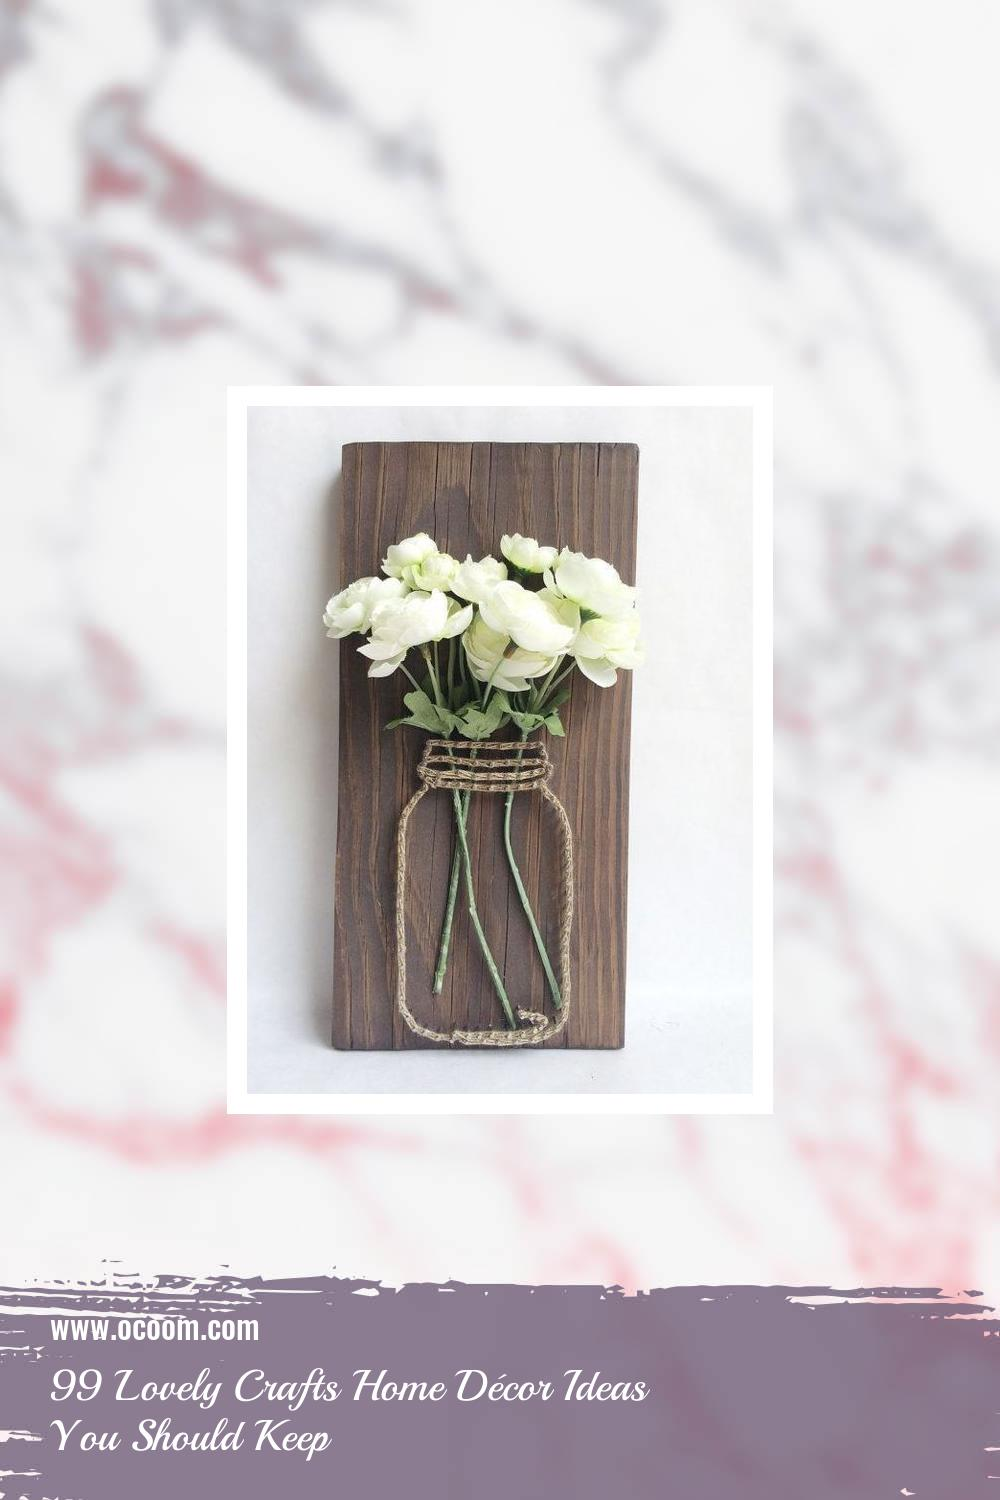 99 Lovely Crafts Home Décor Ideas You Should Keep 9